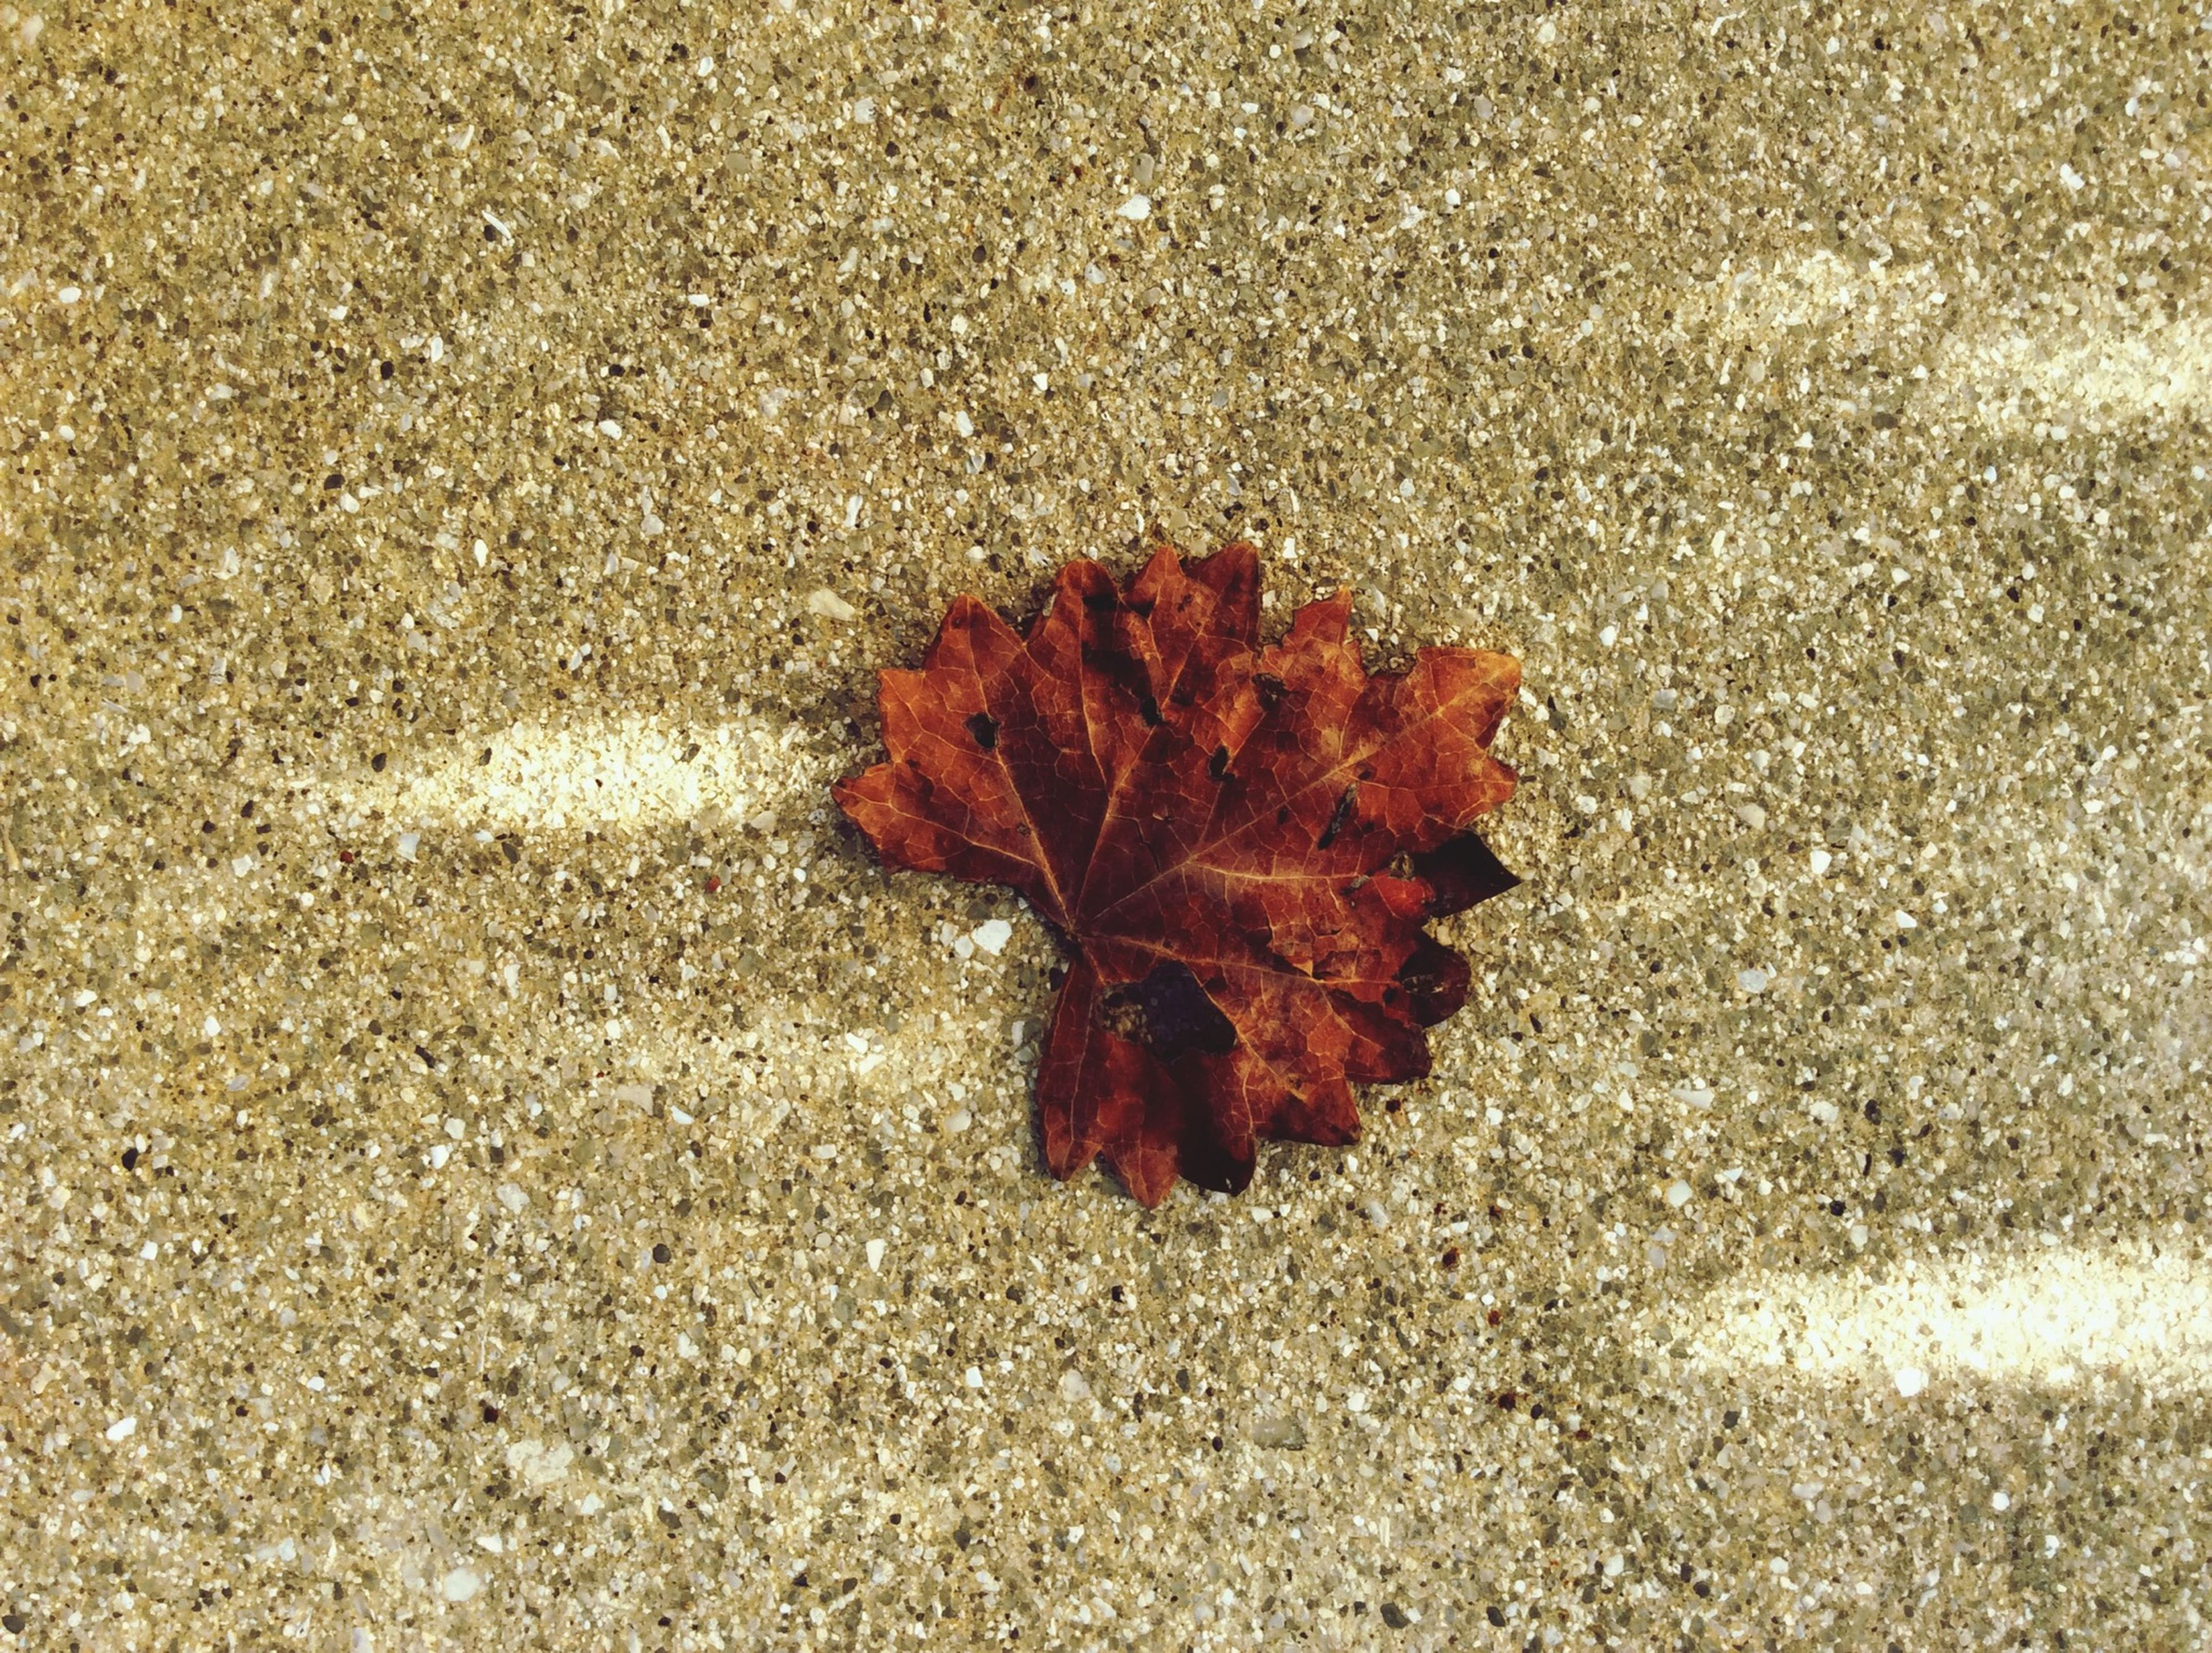 leaf, autumn, change, dry, season, fallen, leaf vein, leaves, high angle view, maple leaf, nature, close-up, ground, natural pattern, street, asphalt, textured, fragility, falling, day